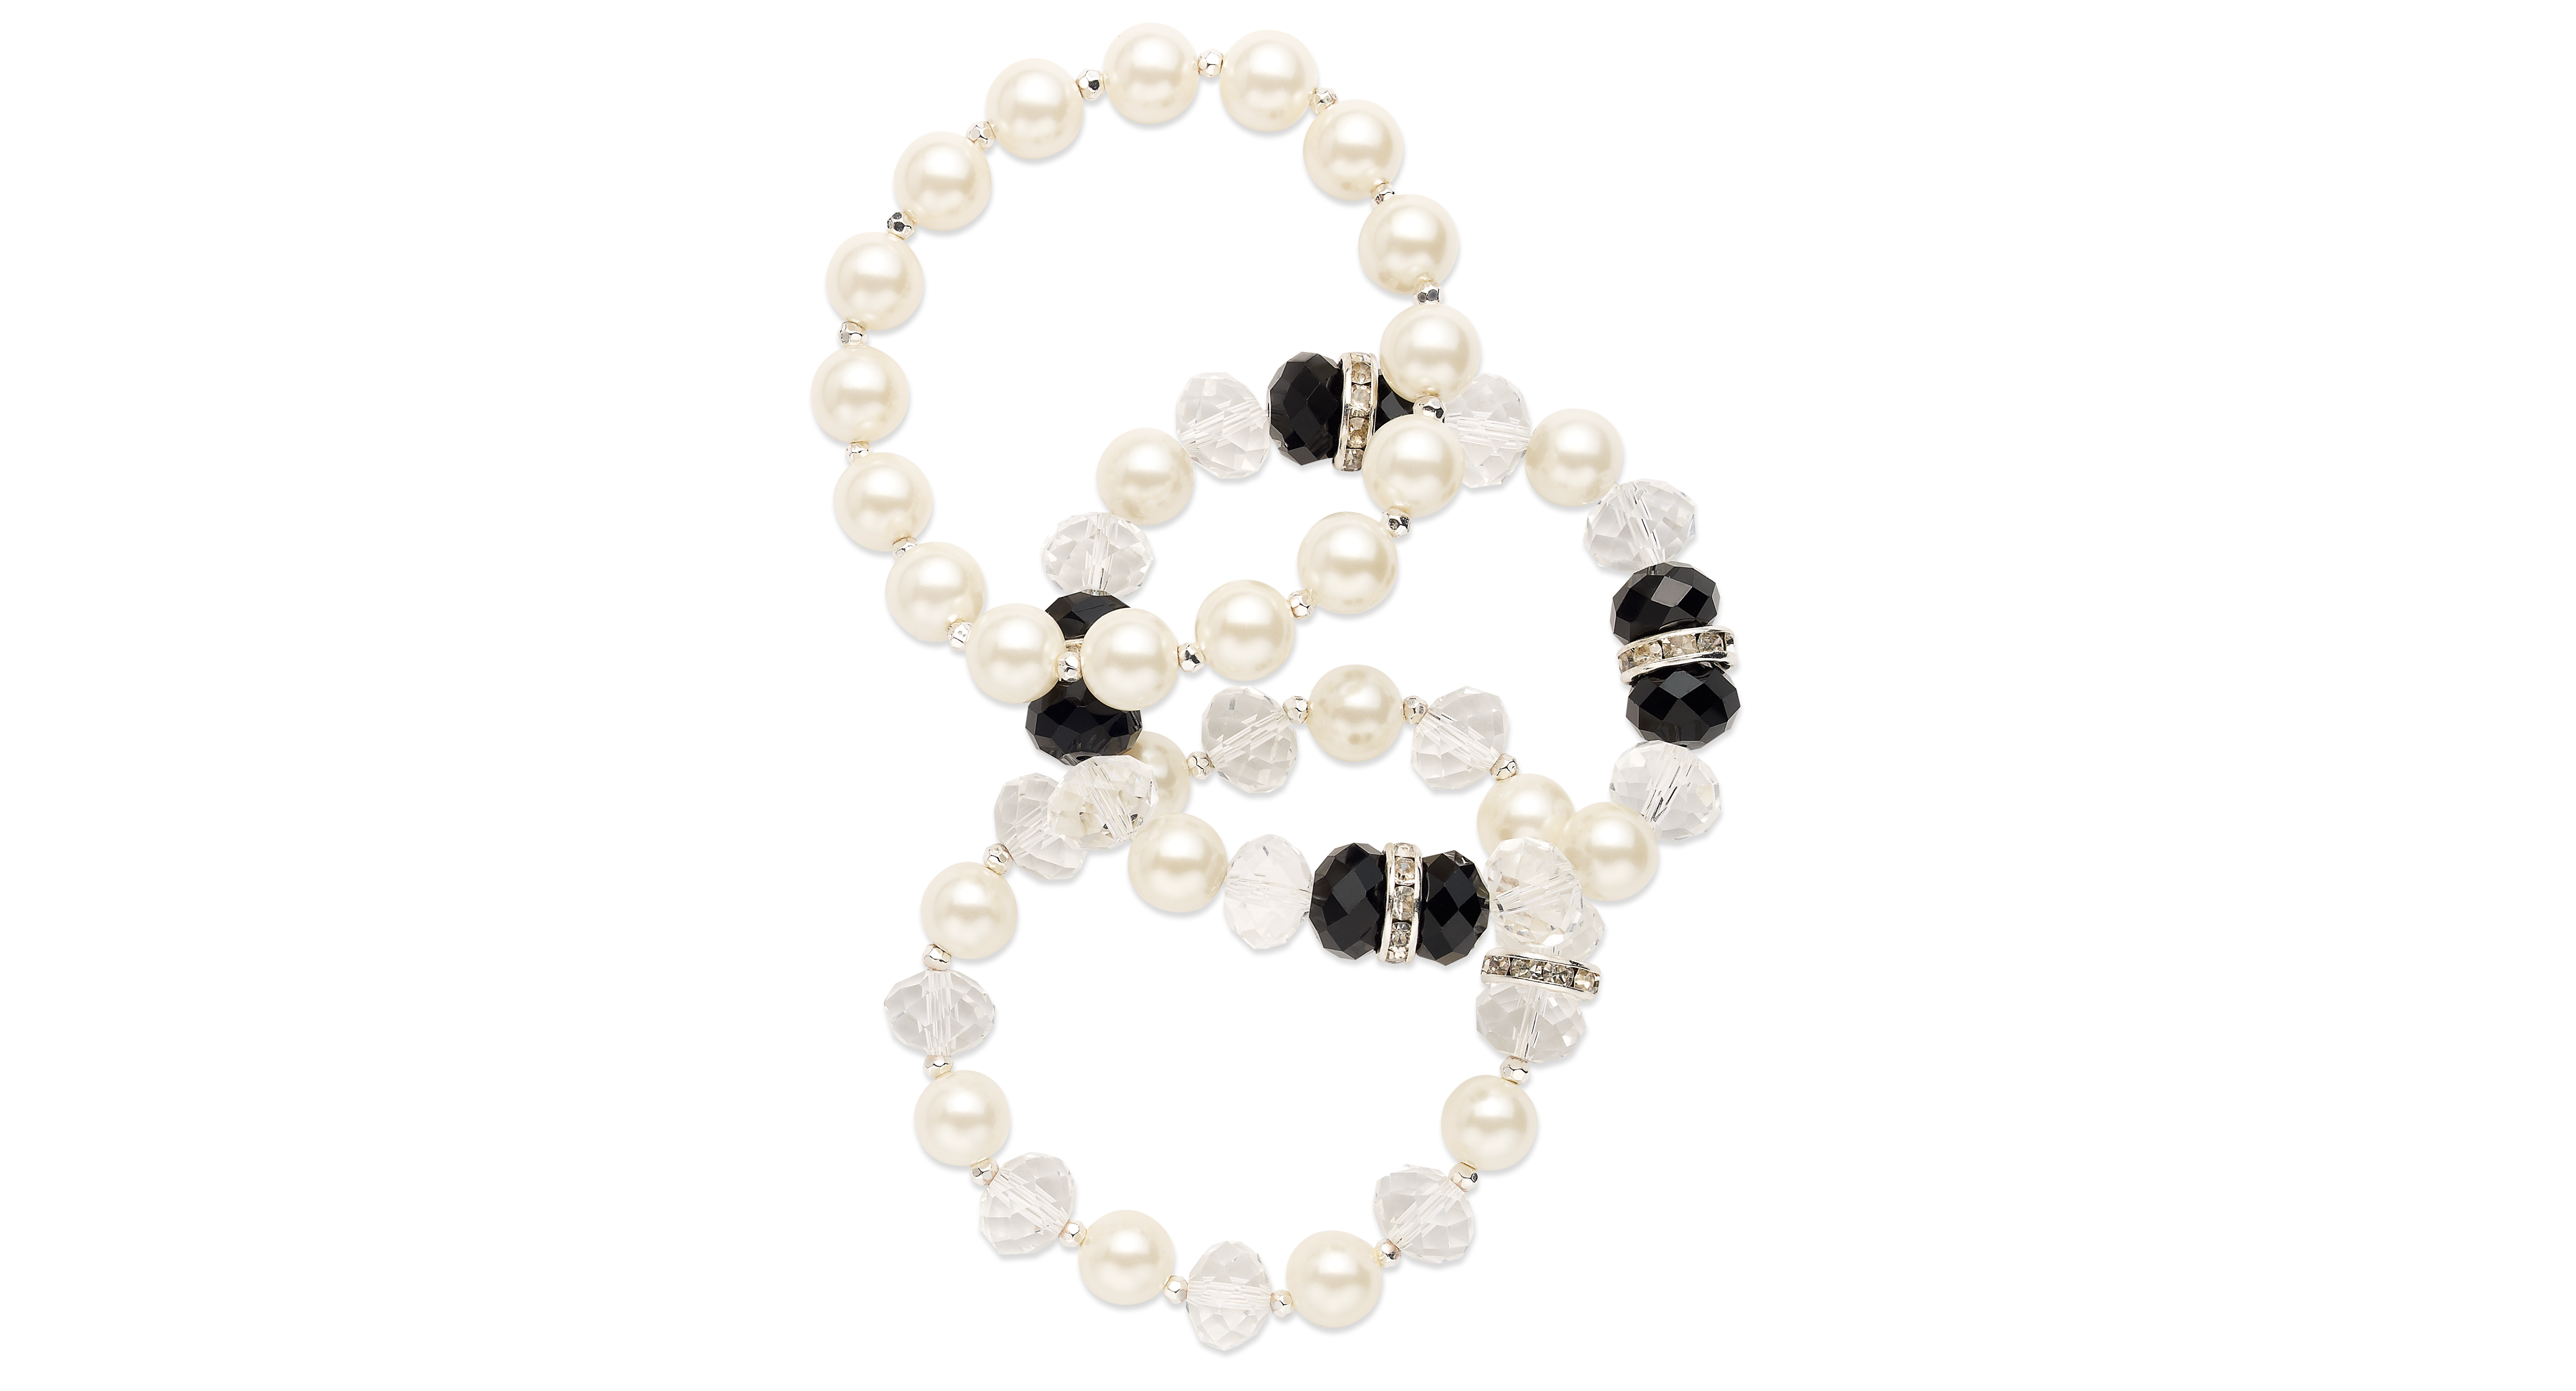 Charter Club Silver-Tone Imitation Pearl and Jet Bead Stretch Bracelet Set